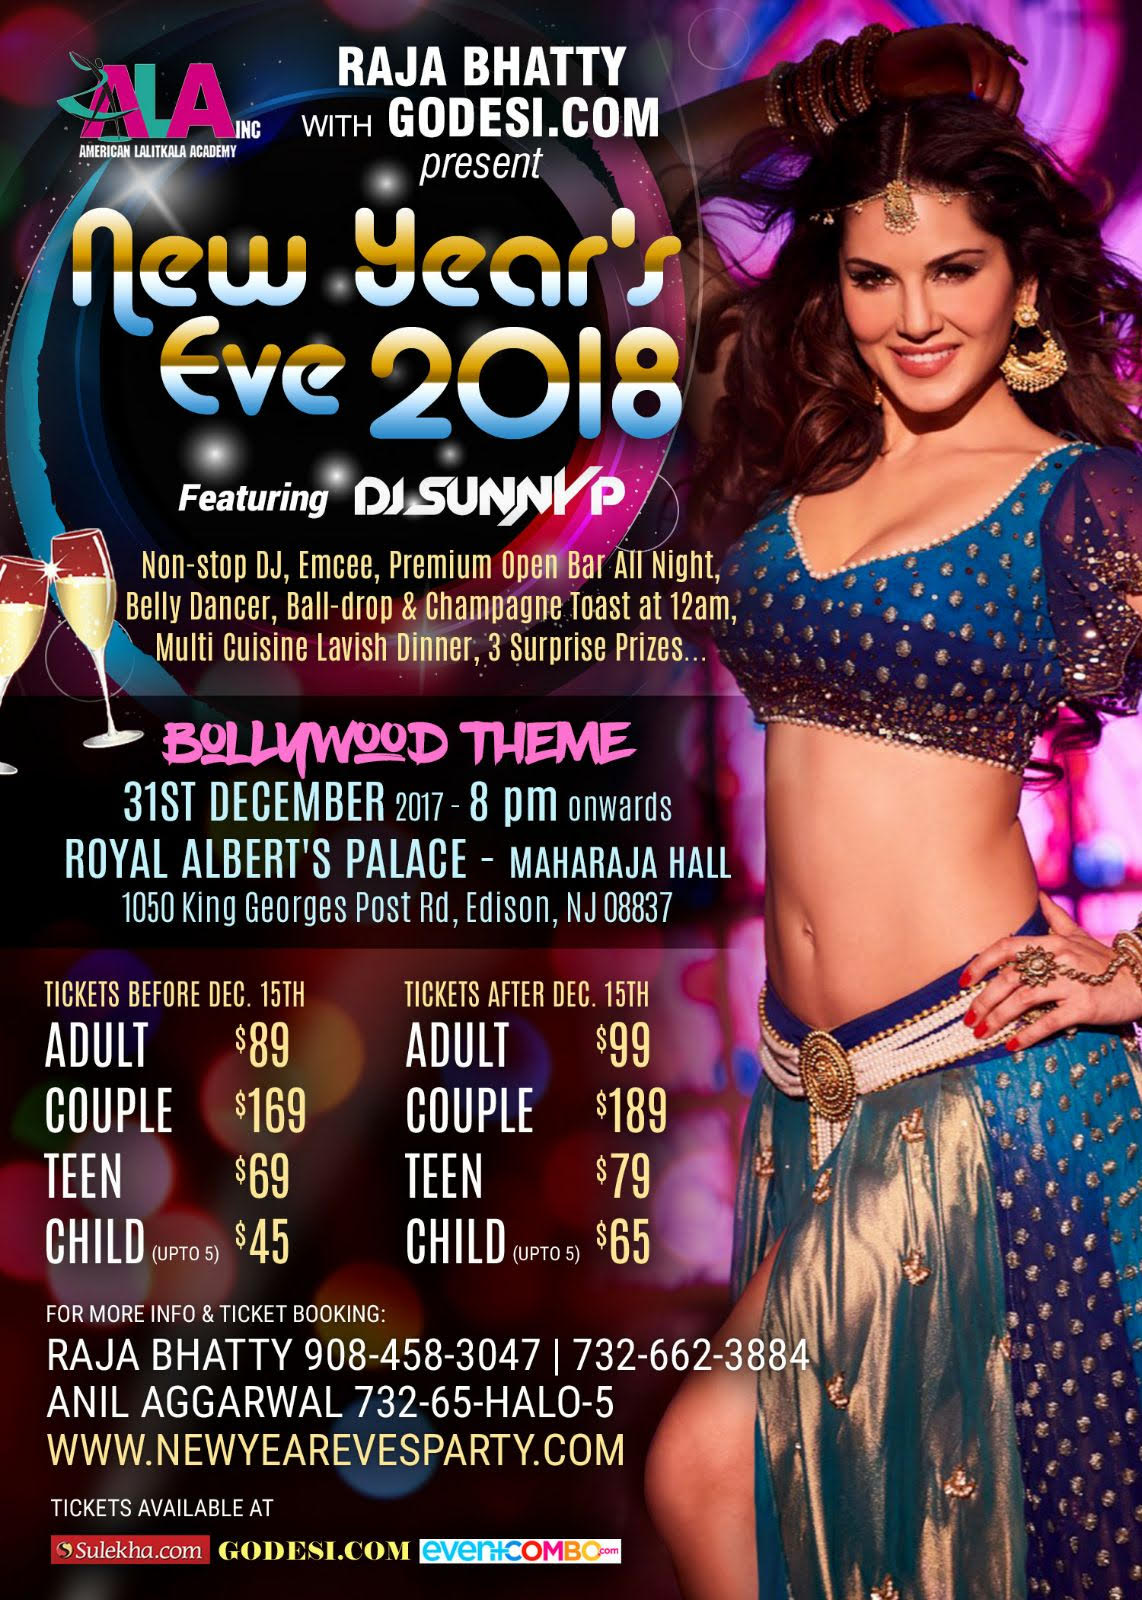 New Year's Eve 2018 Featuring DJ SunnyP at Royal Albert's Palace in New Jersey